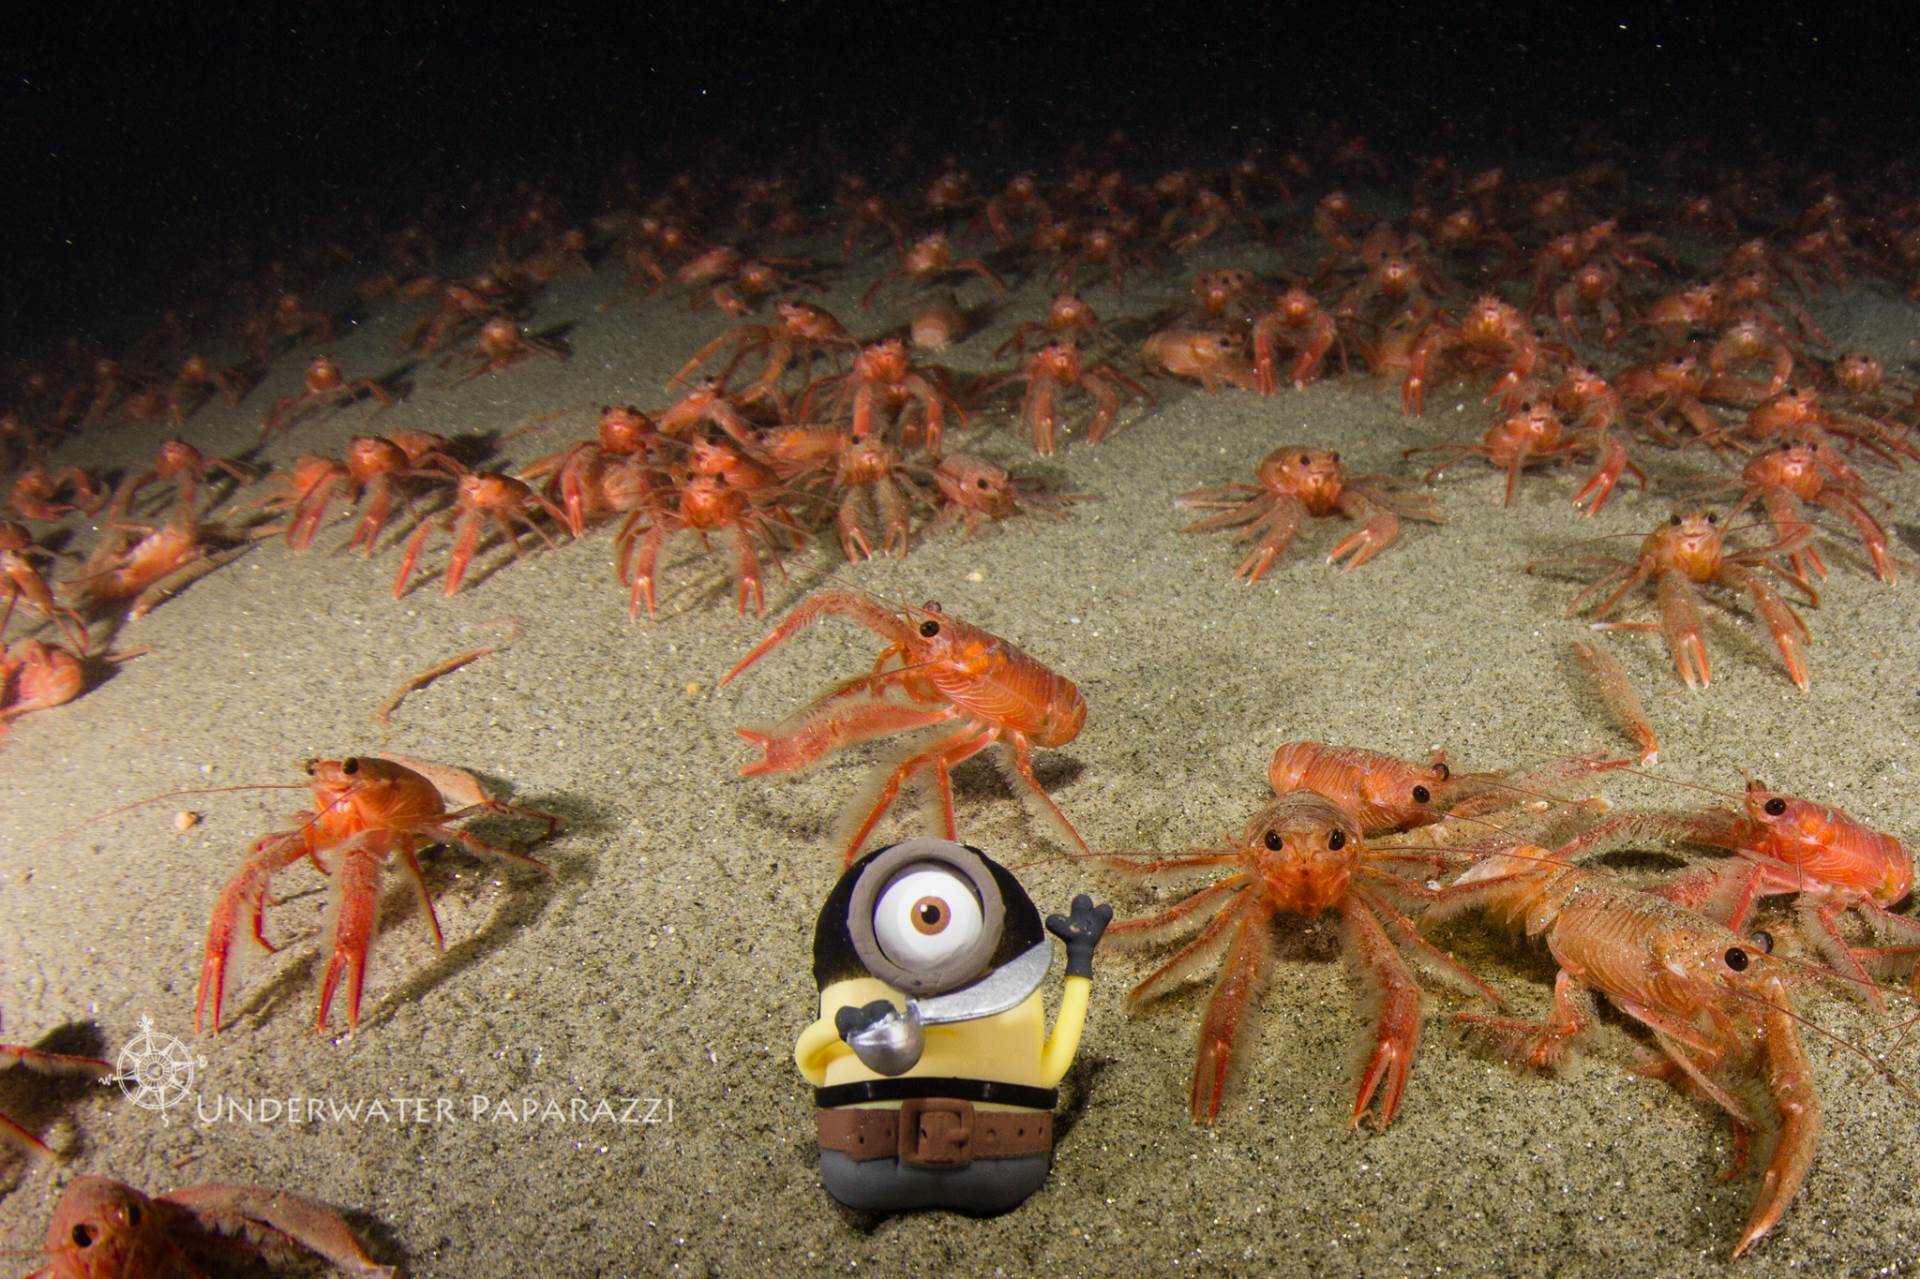 Tuna Crabs take over La jolla Shores at 80 feet below the surface